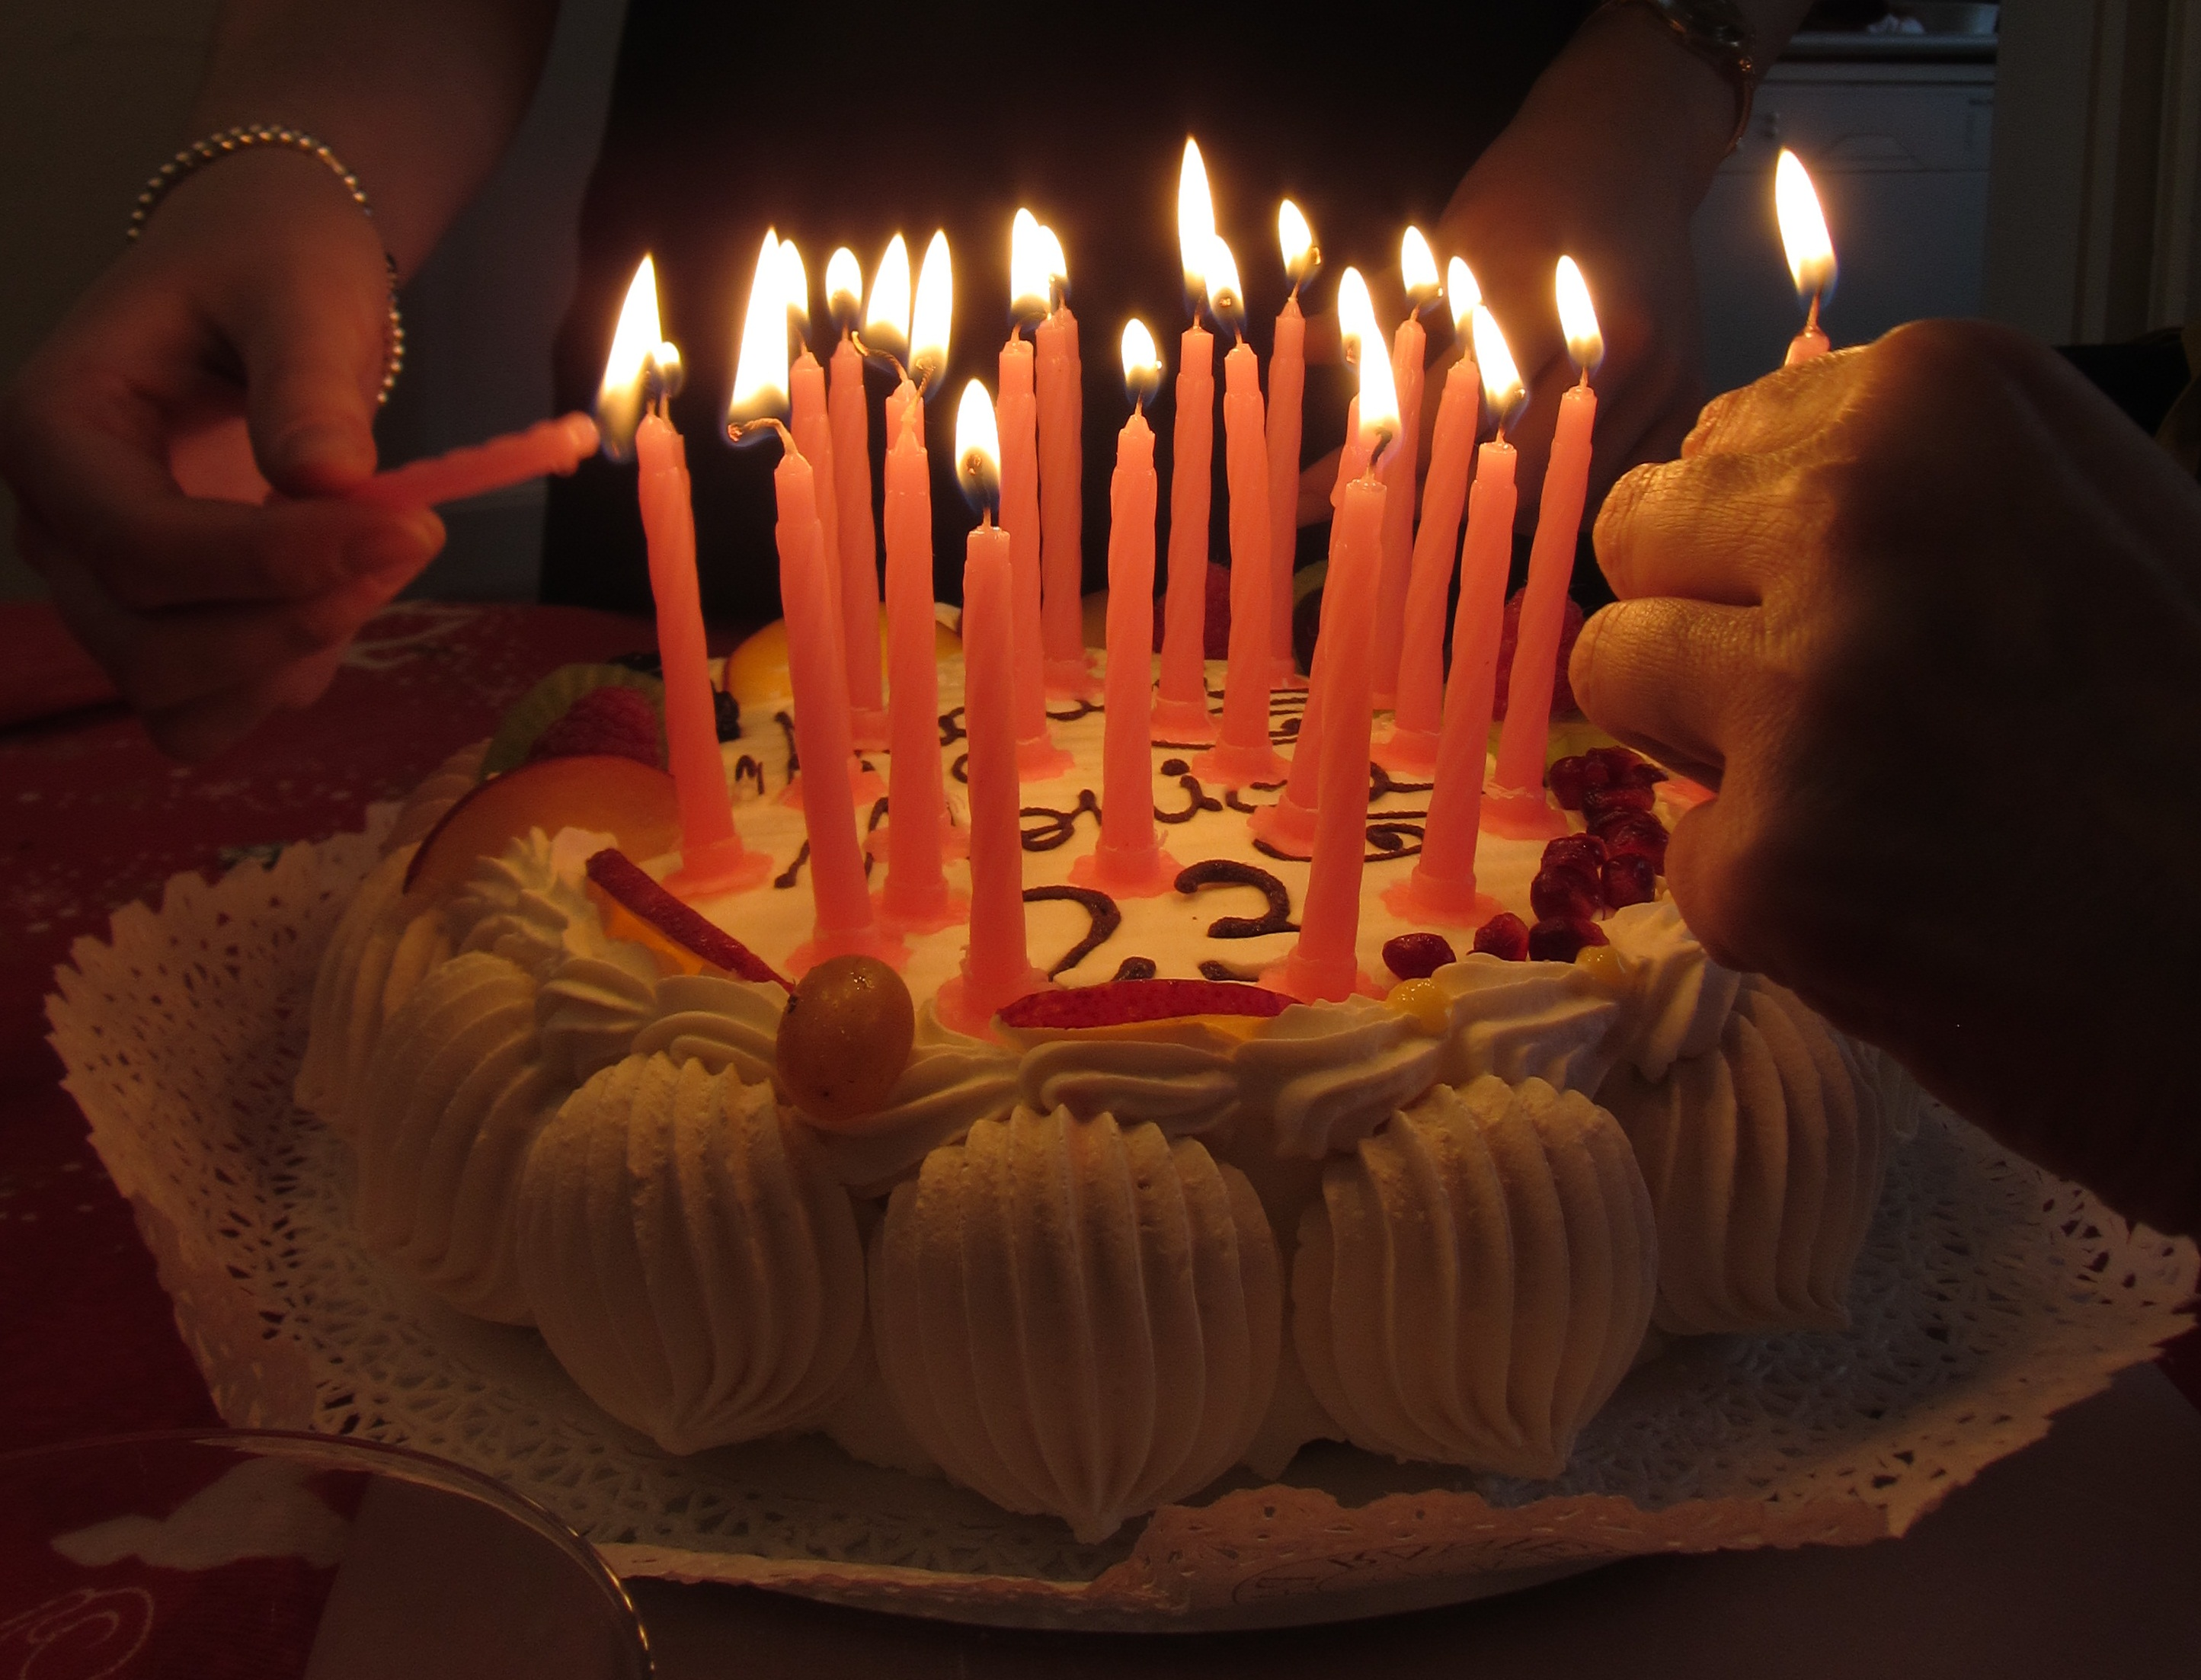 Fileitaly Birthday Cake With Candles 3g Wikimedia Commons